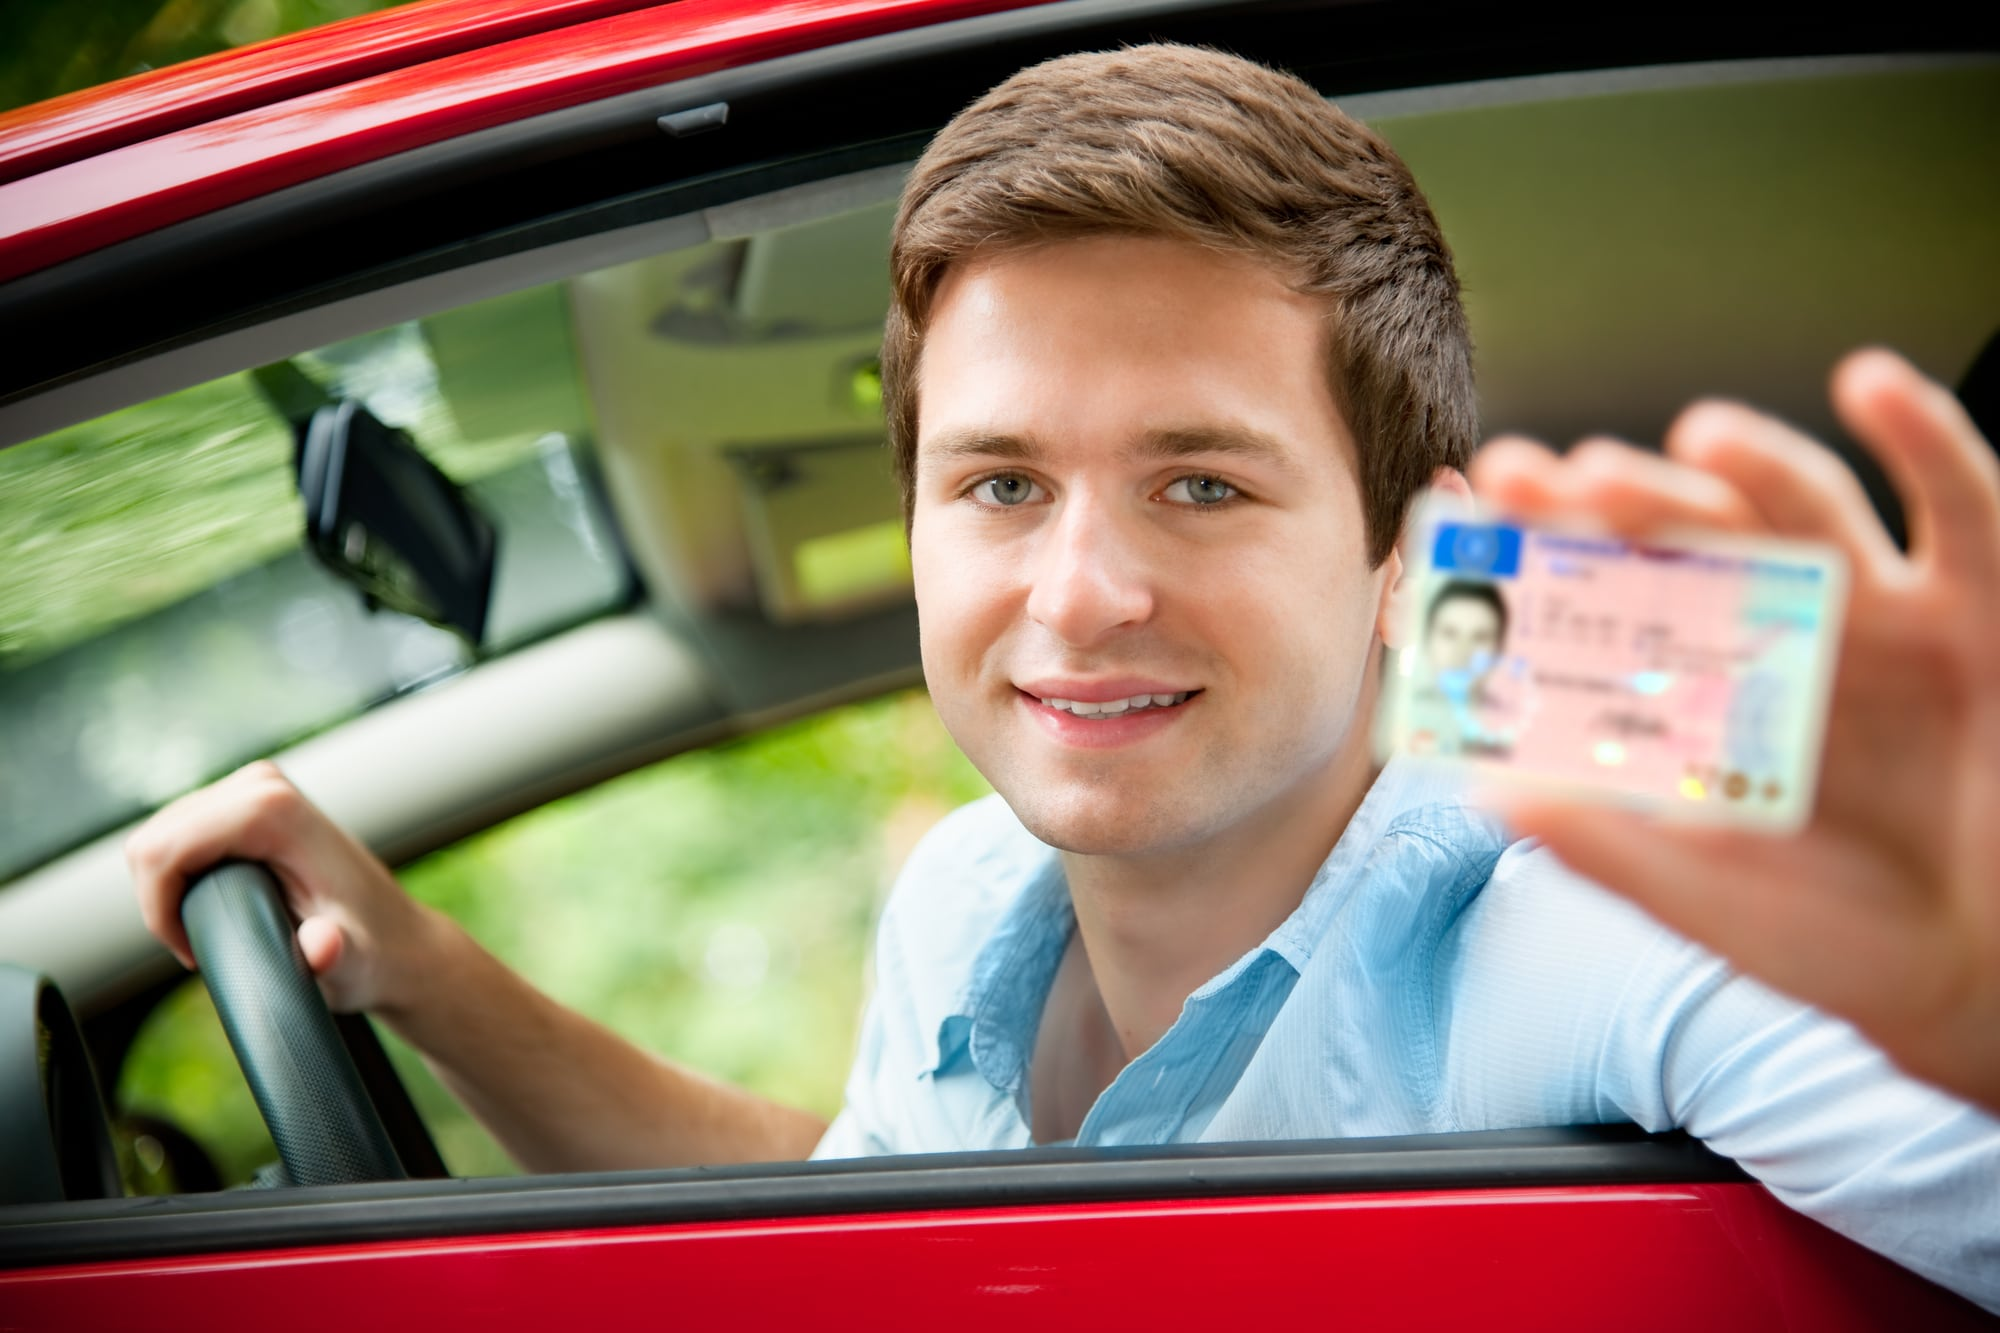 International Driver's License Misconceptions